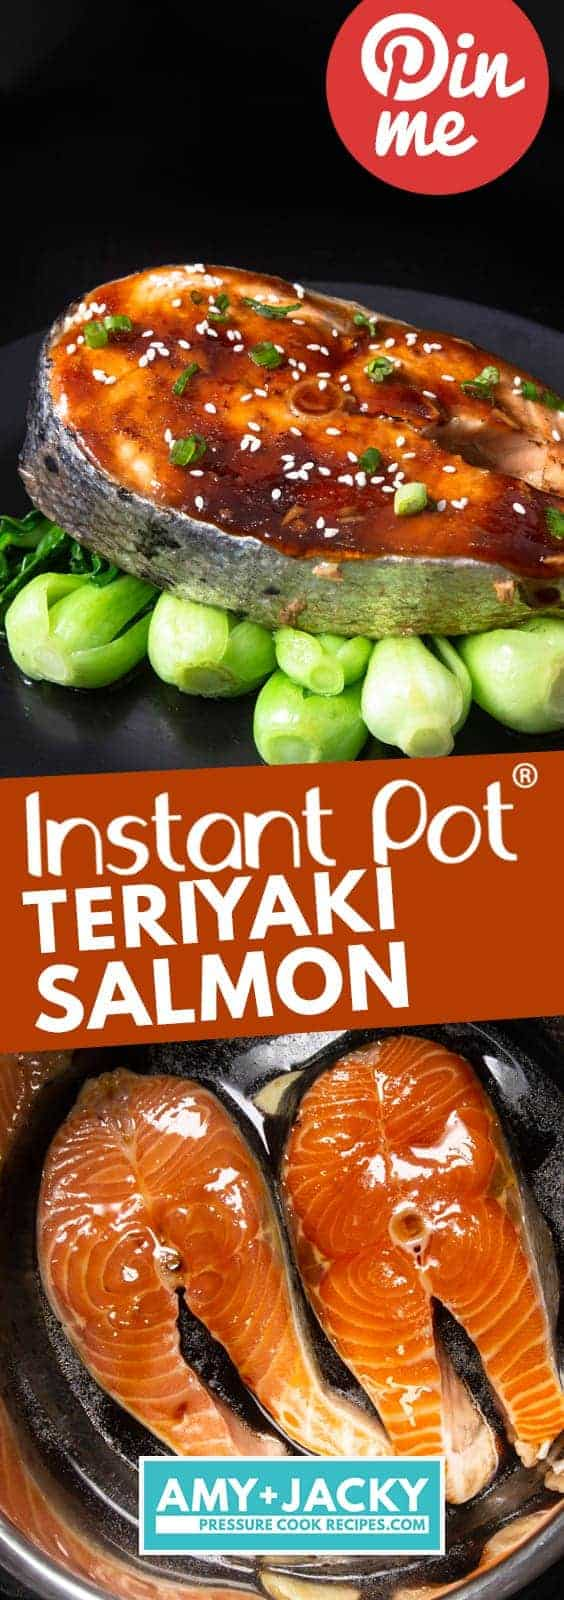 Instant Pot Teriyaki Salmon | Instant Pot Salmon | Instant Pot Fish | Instapot Teriyaki Salmon | Pressure Cooker Teriyaki Salmon | Pressure Cooker Salmon | Pressure Cooker Fish | Instant Pot Recipes #instantpot #pressurecooker #fish #recipes